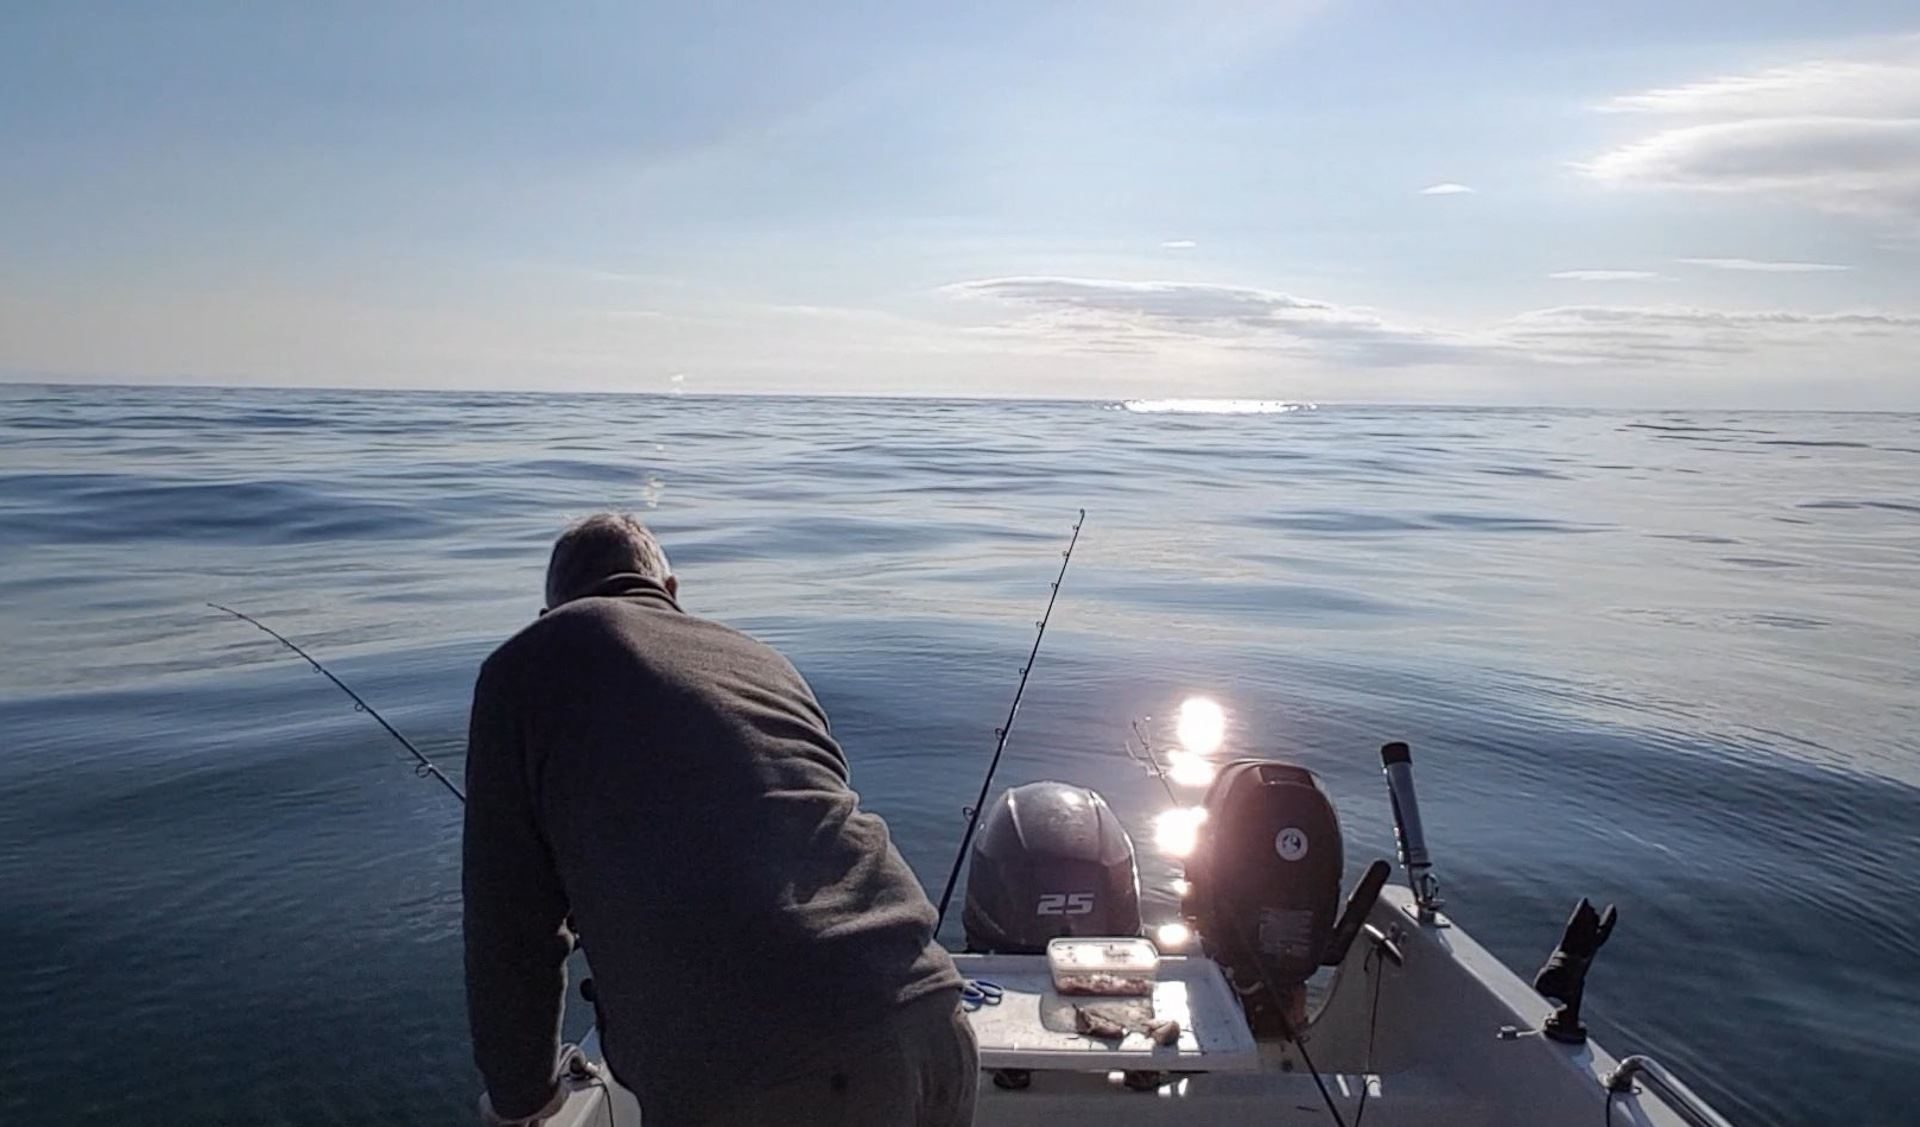 An easy day fishing out of Dunbar in calm conditions